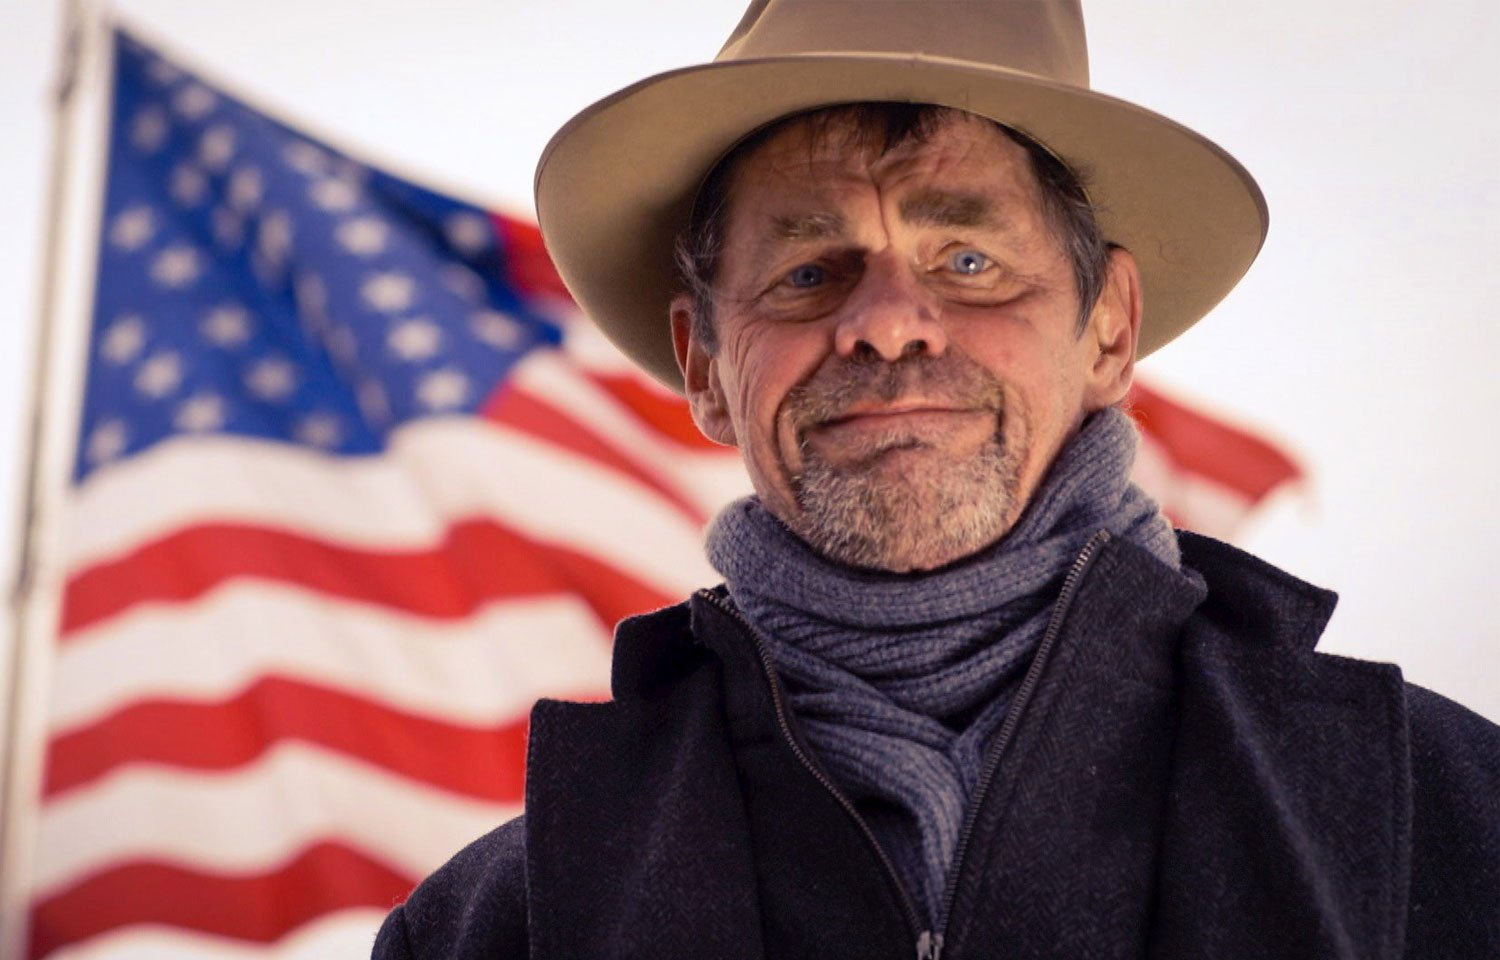 RICH HALL'S WORKING FOR THE AMERICAN DREAM DEBUTS